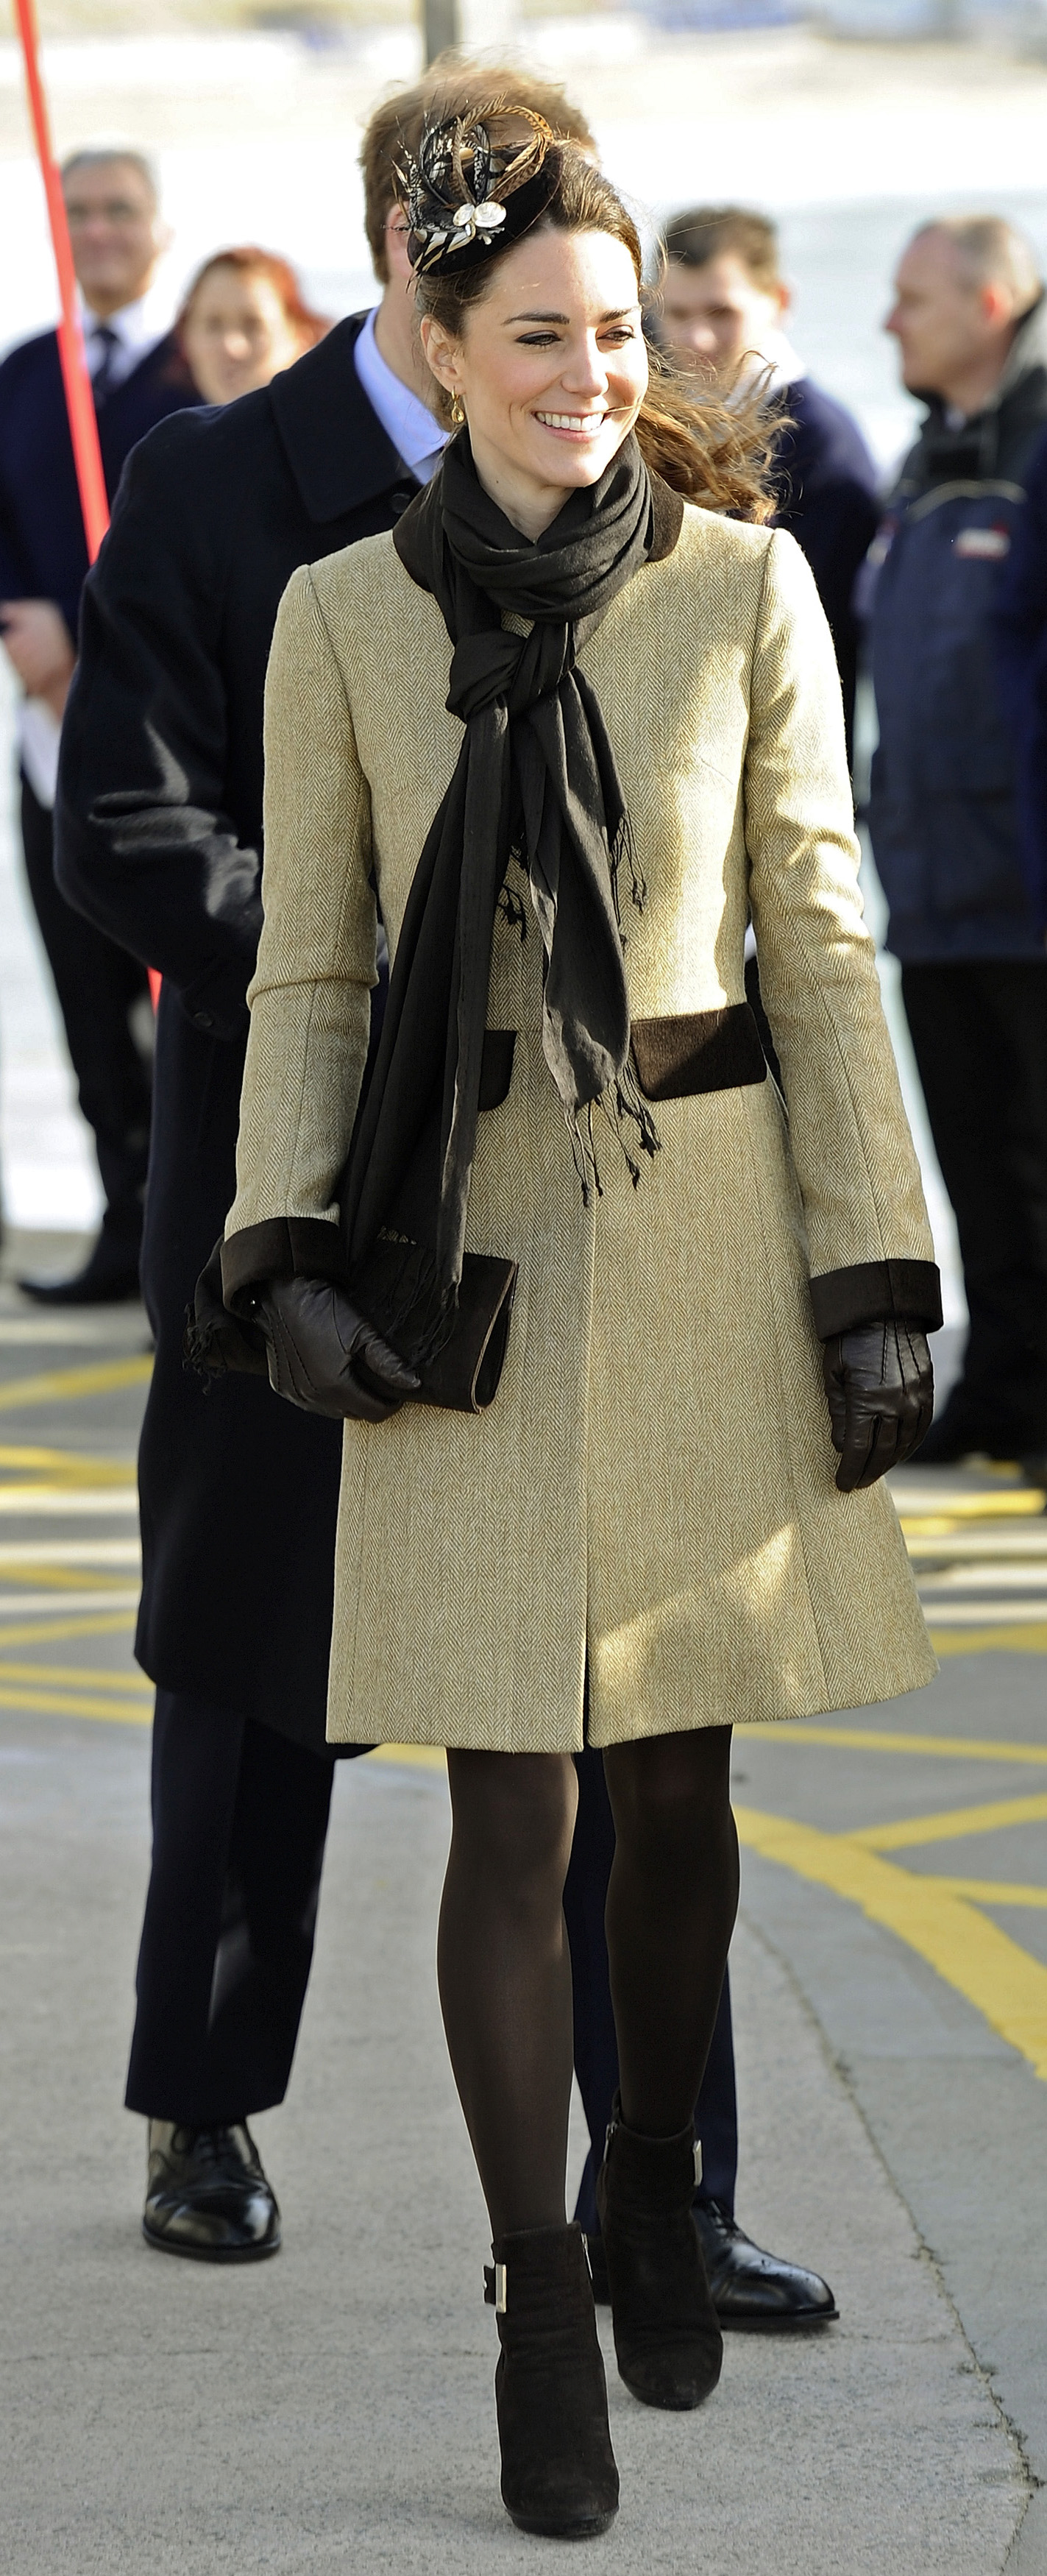 <strong>Middleton's Official Style</strong>                                   In her first official royal duty after the announcement of her engagement to Prince William, Middleton wore a coat with a classic silhouette, accessorized by a feather headpiece. Feb. 24, 2011